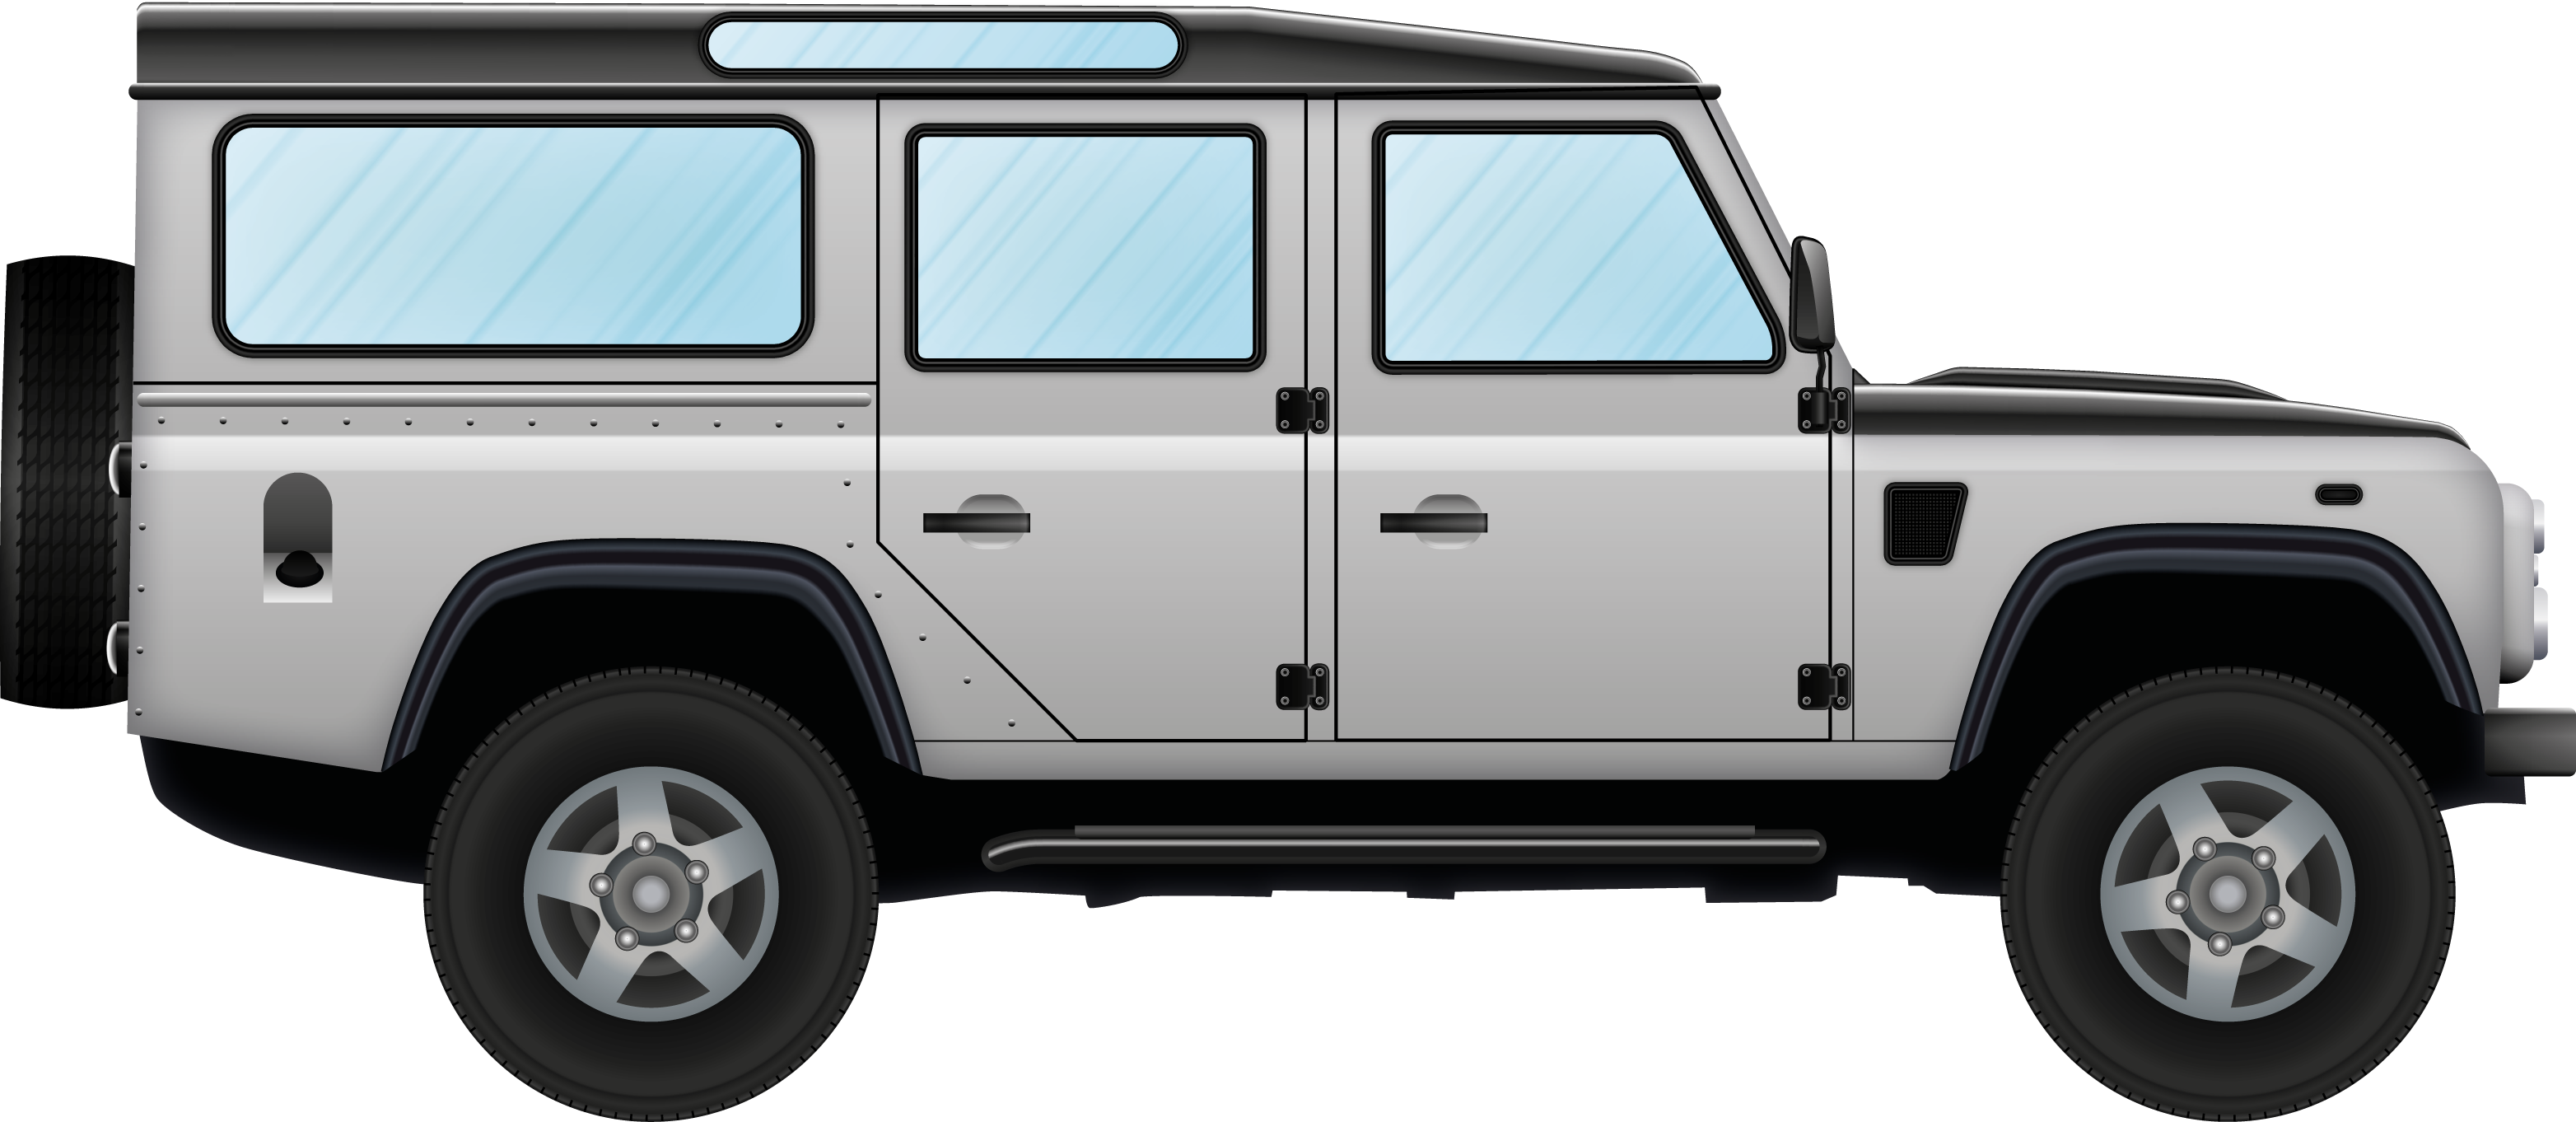 Land Rover Defender 2014 >> File:Illustration of on off-road automobile.png - Wikimedia Commons